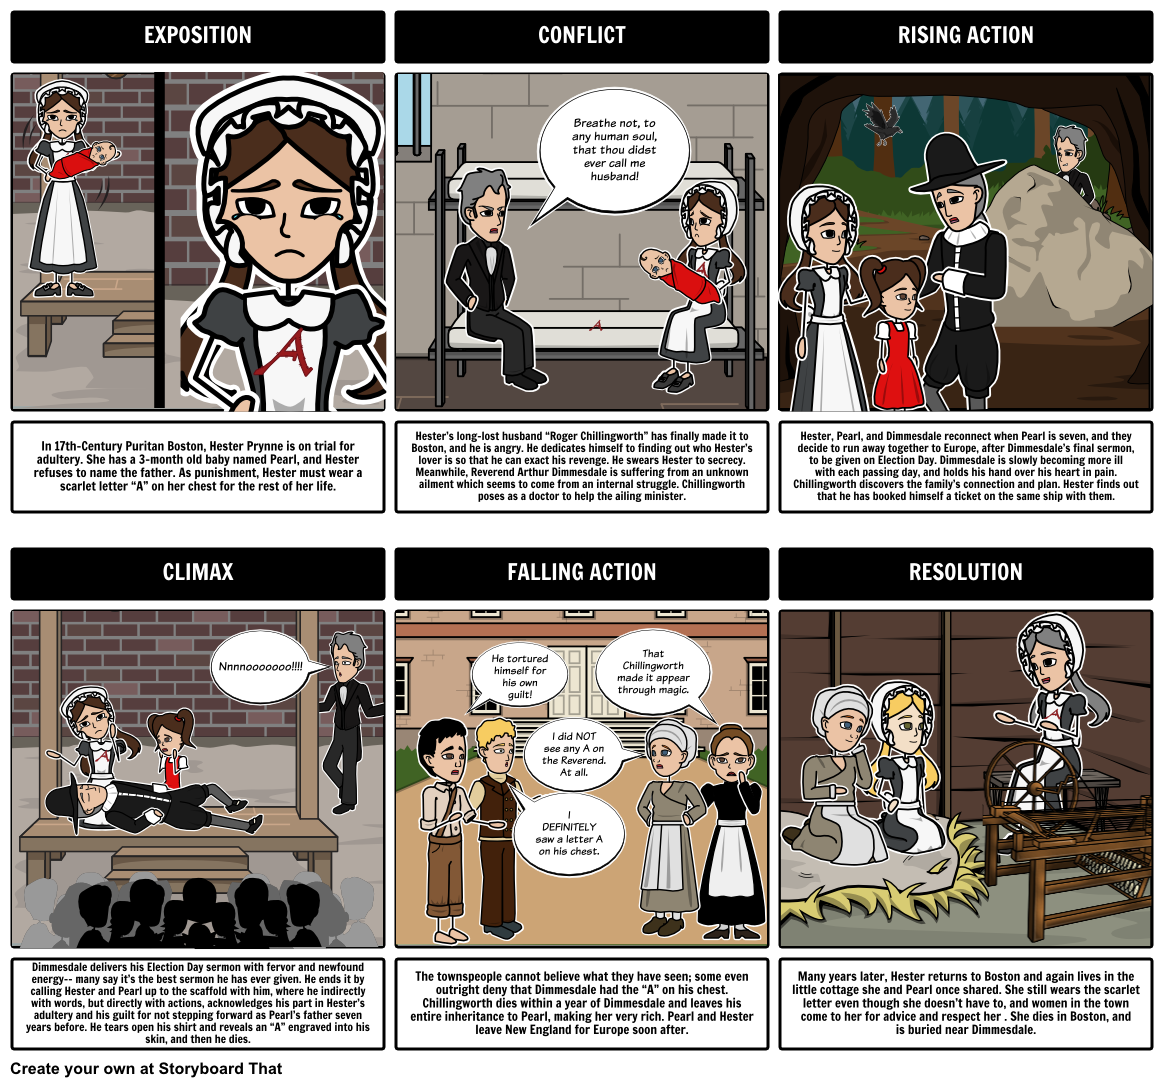 Are Your Students Reading The Scarlet Letter By Nathaniel Hawthorne